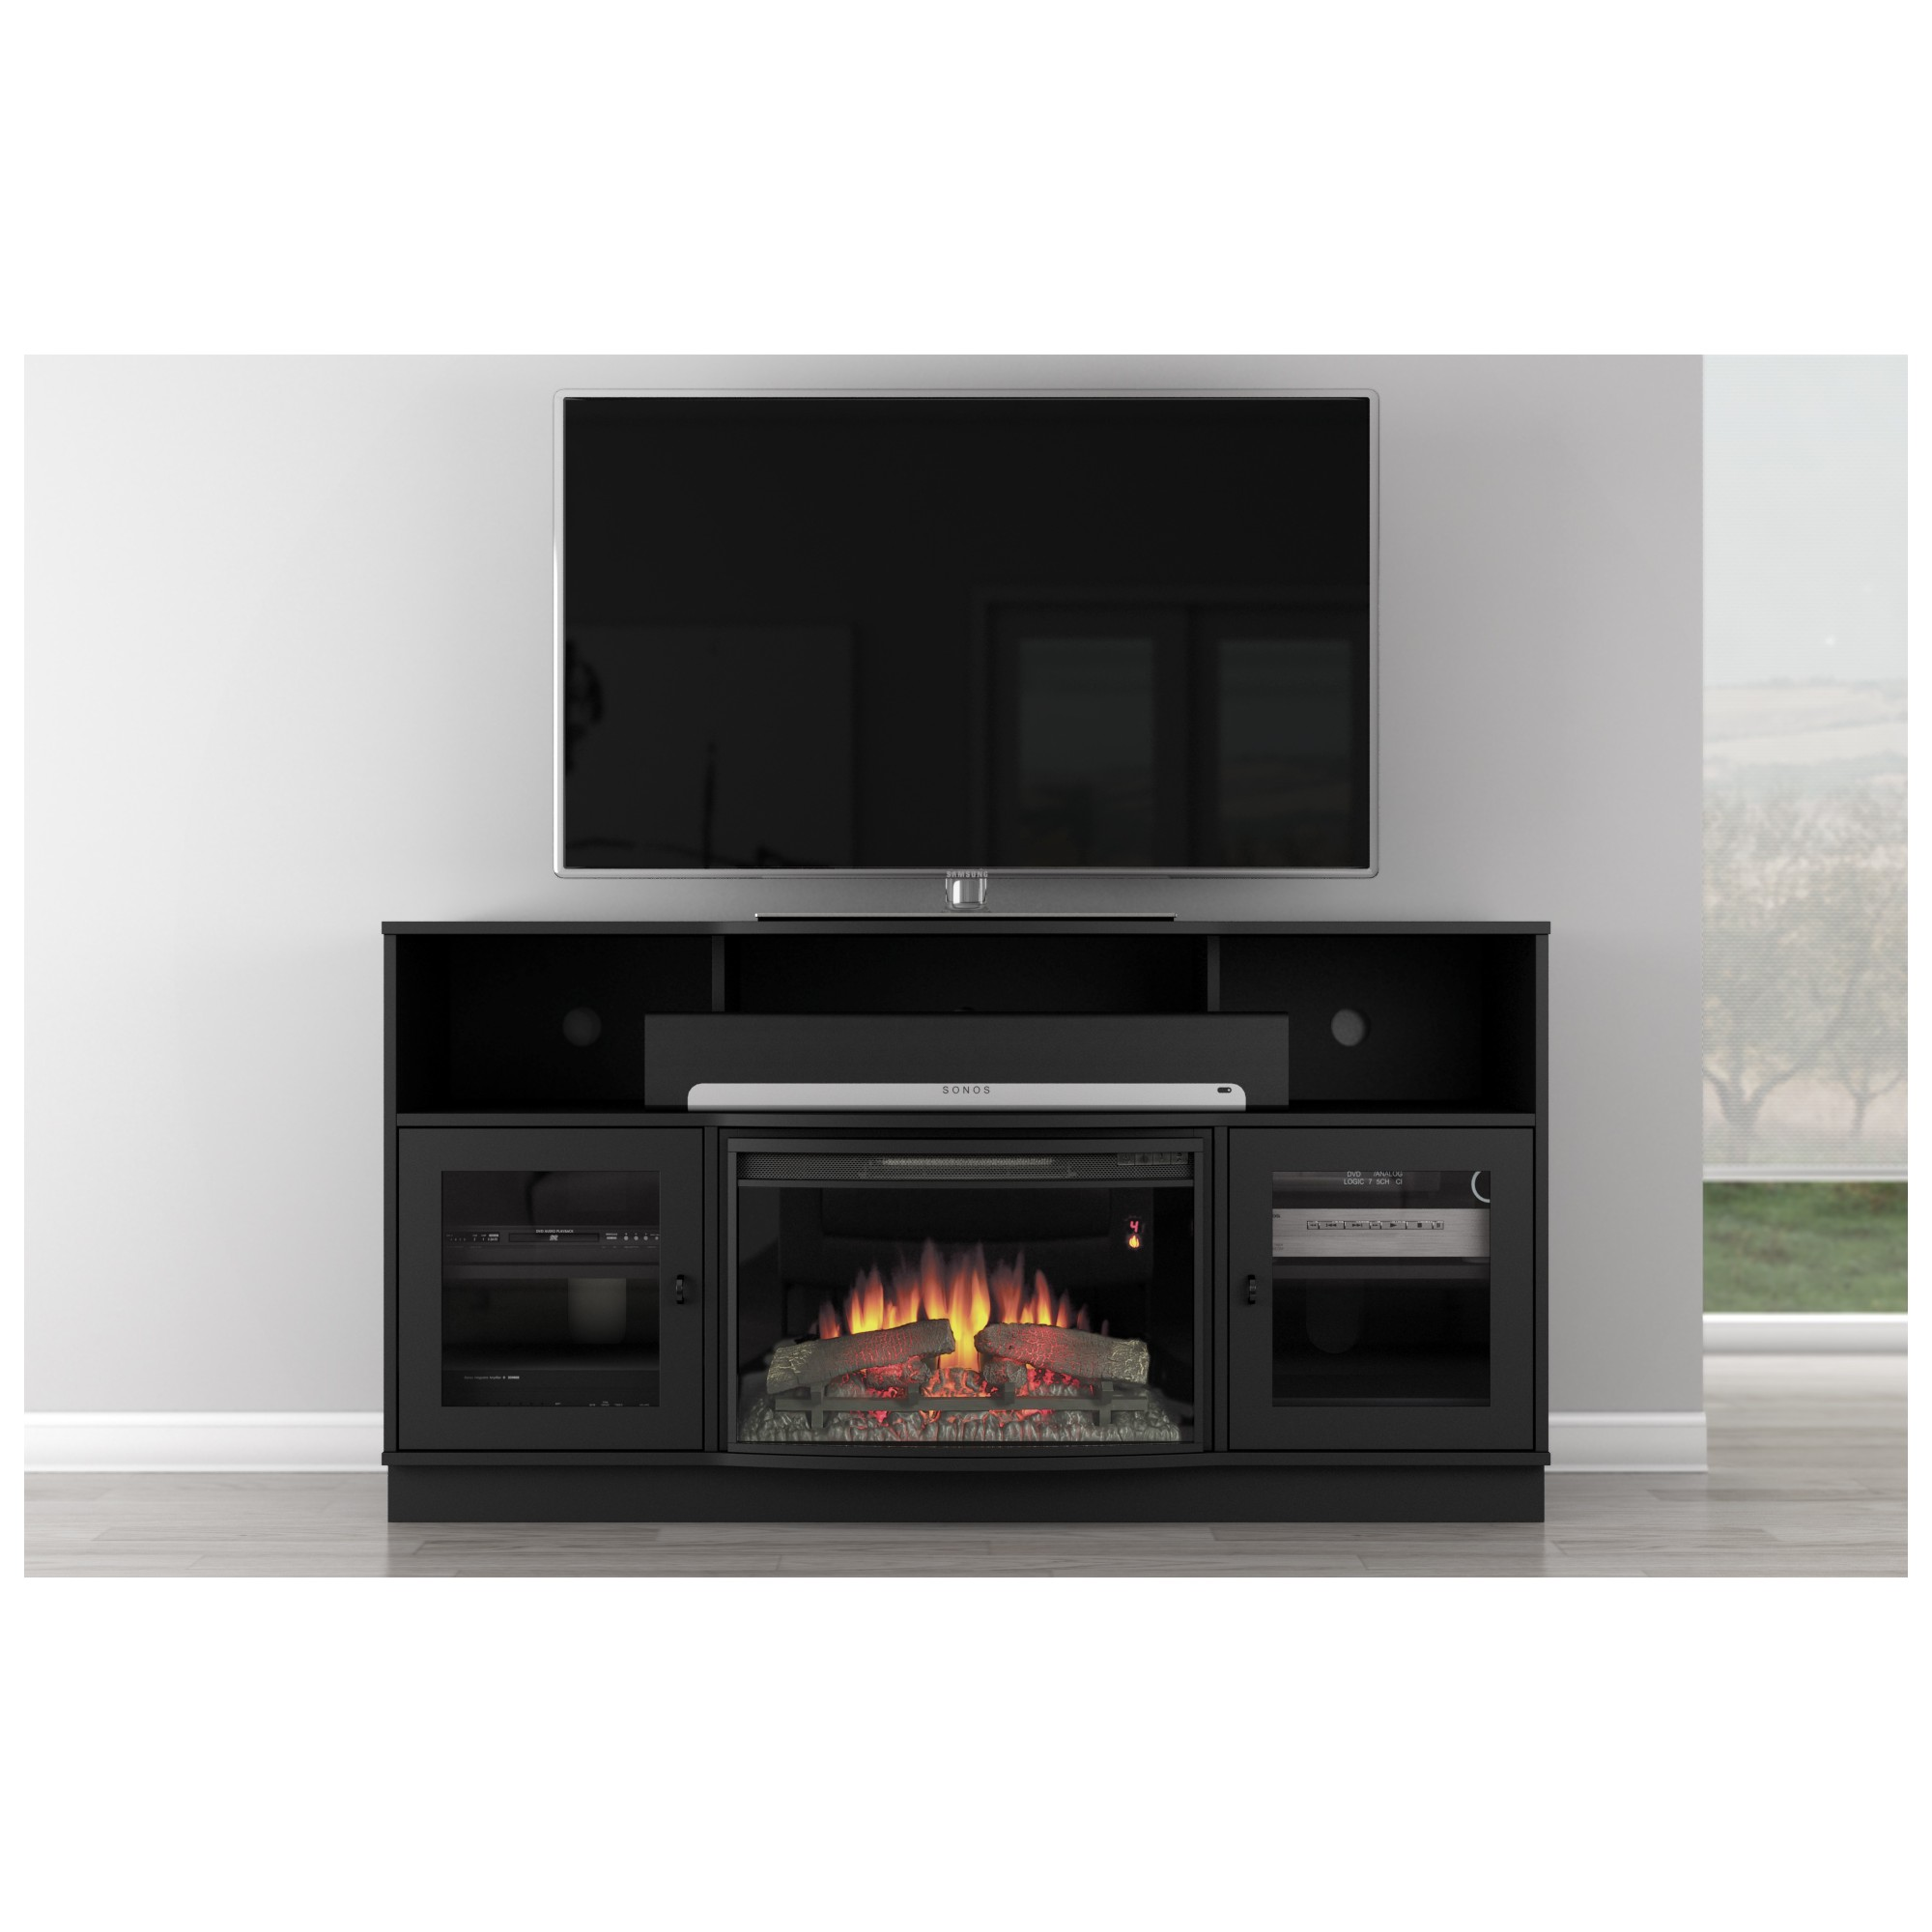 furnitech ft64cf b 66 tv stand contemporary w curved front electric fireplace in black. Black Bedroom Furniture Sets. Home Design Ideas